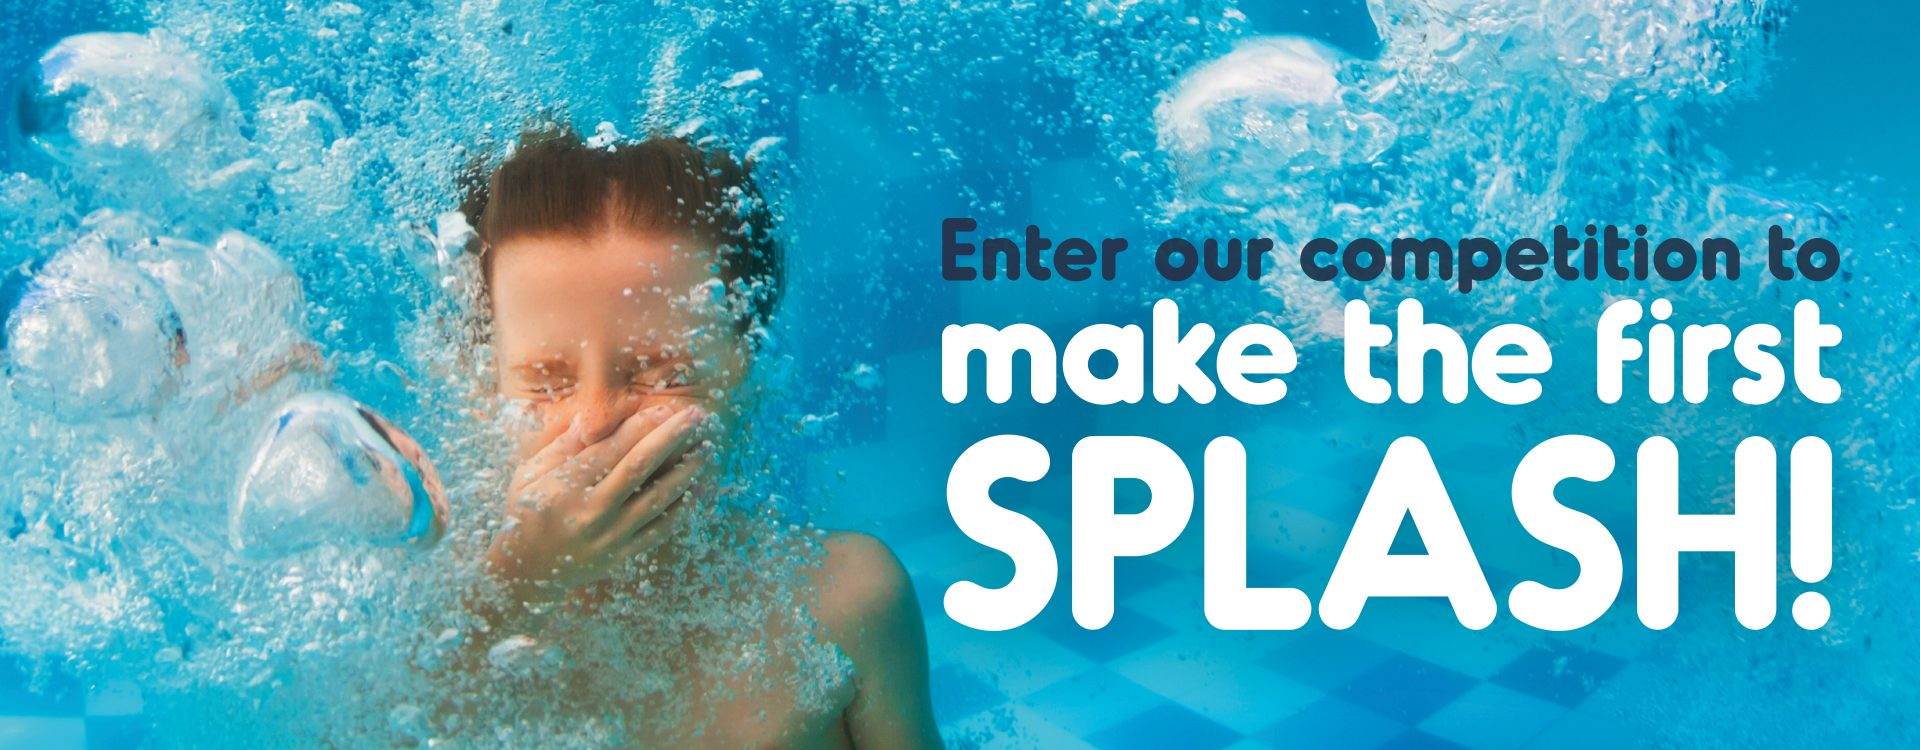 Make the first splash at The City Baths Competition